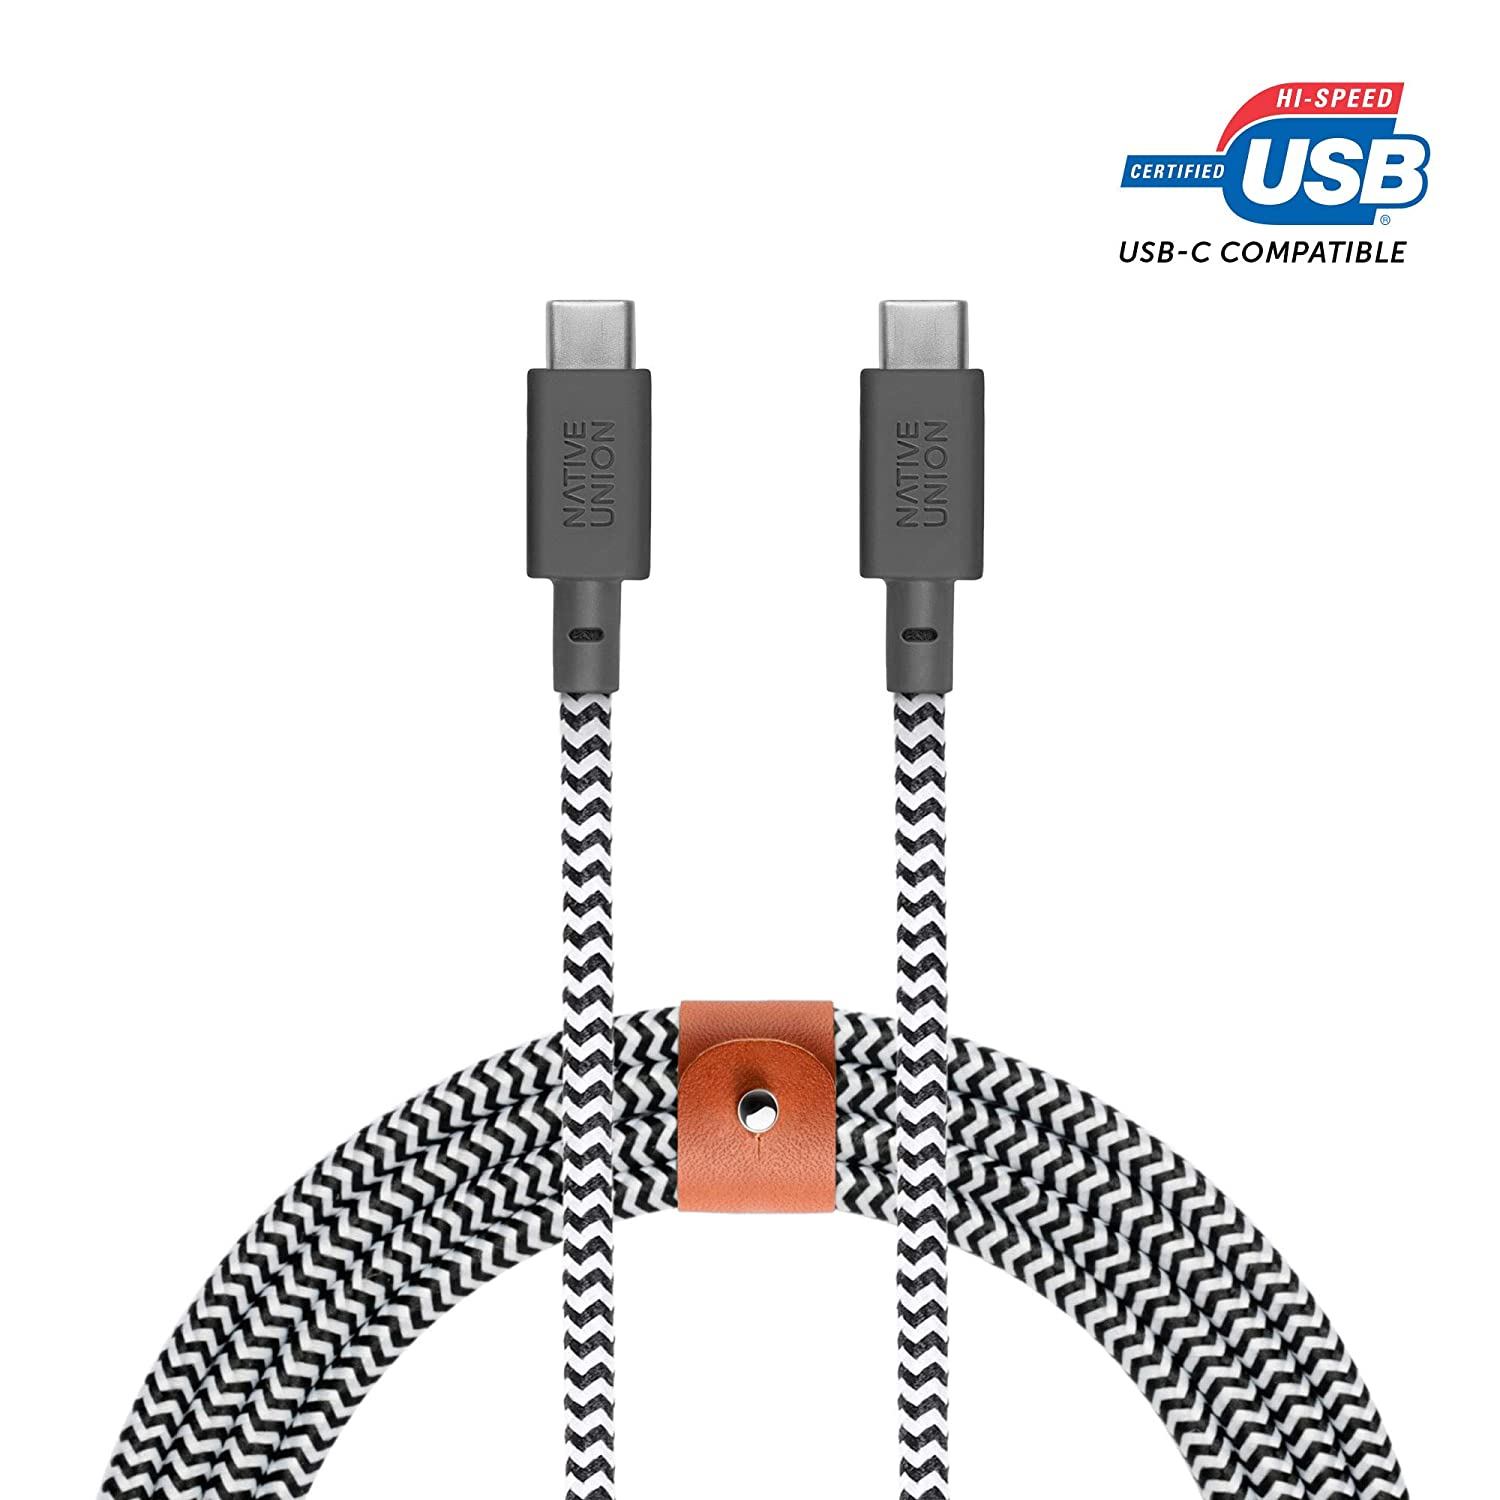 Note10+ S20+ Google Pixel 4 A20s S20 Zebra A71 8ft Ultra-Strong Cable with Leather Strap for Samsung Galaxy Z Flip S20 Ultra Native Union Belt Cable USB-C to USB-C